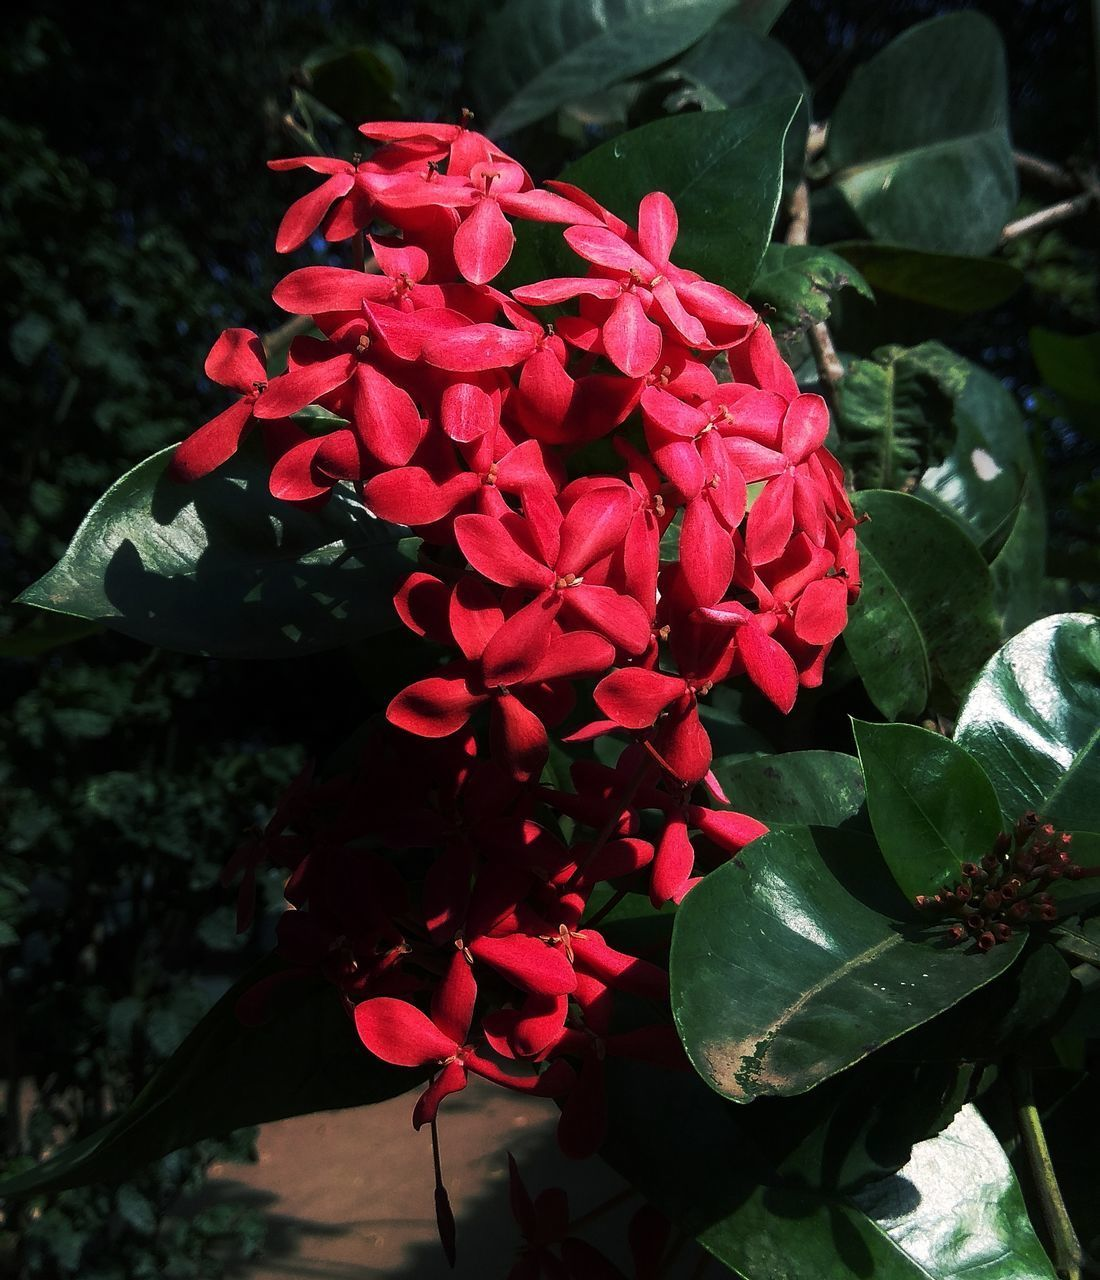 CLOSE-UP OF RED ROSE PLANT